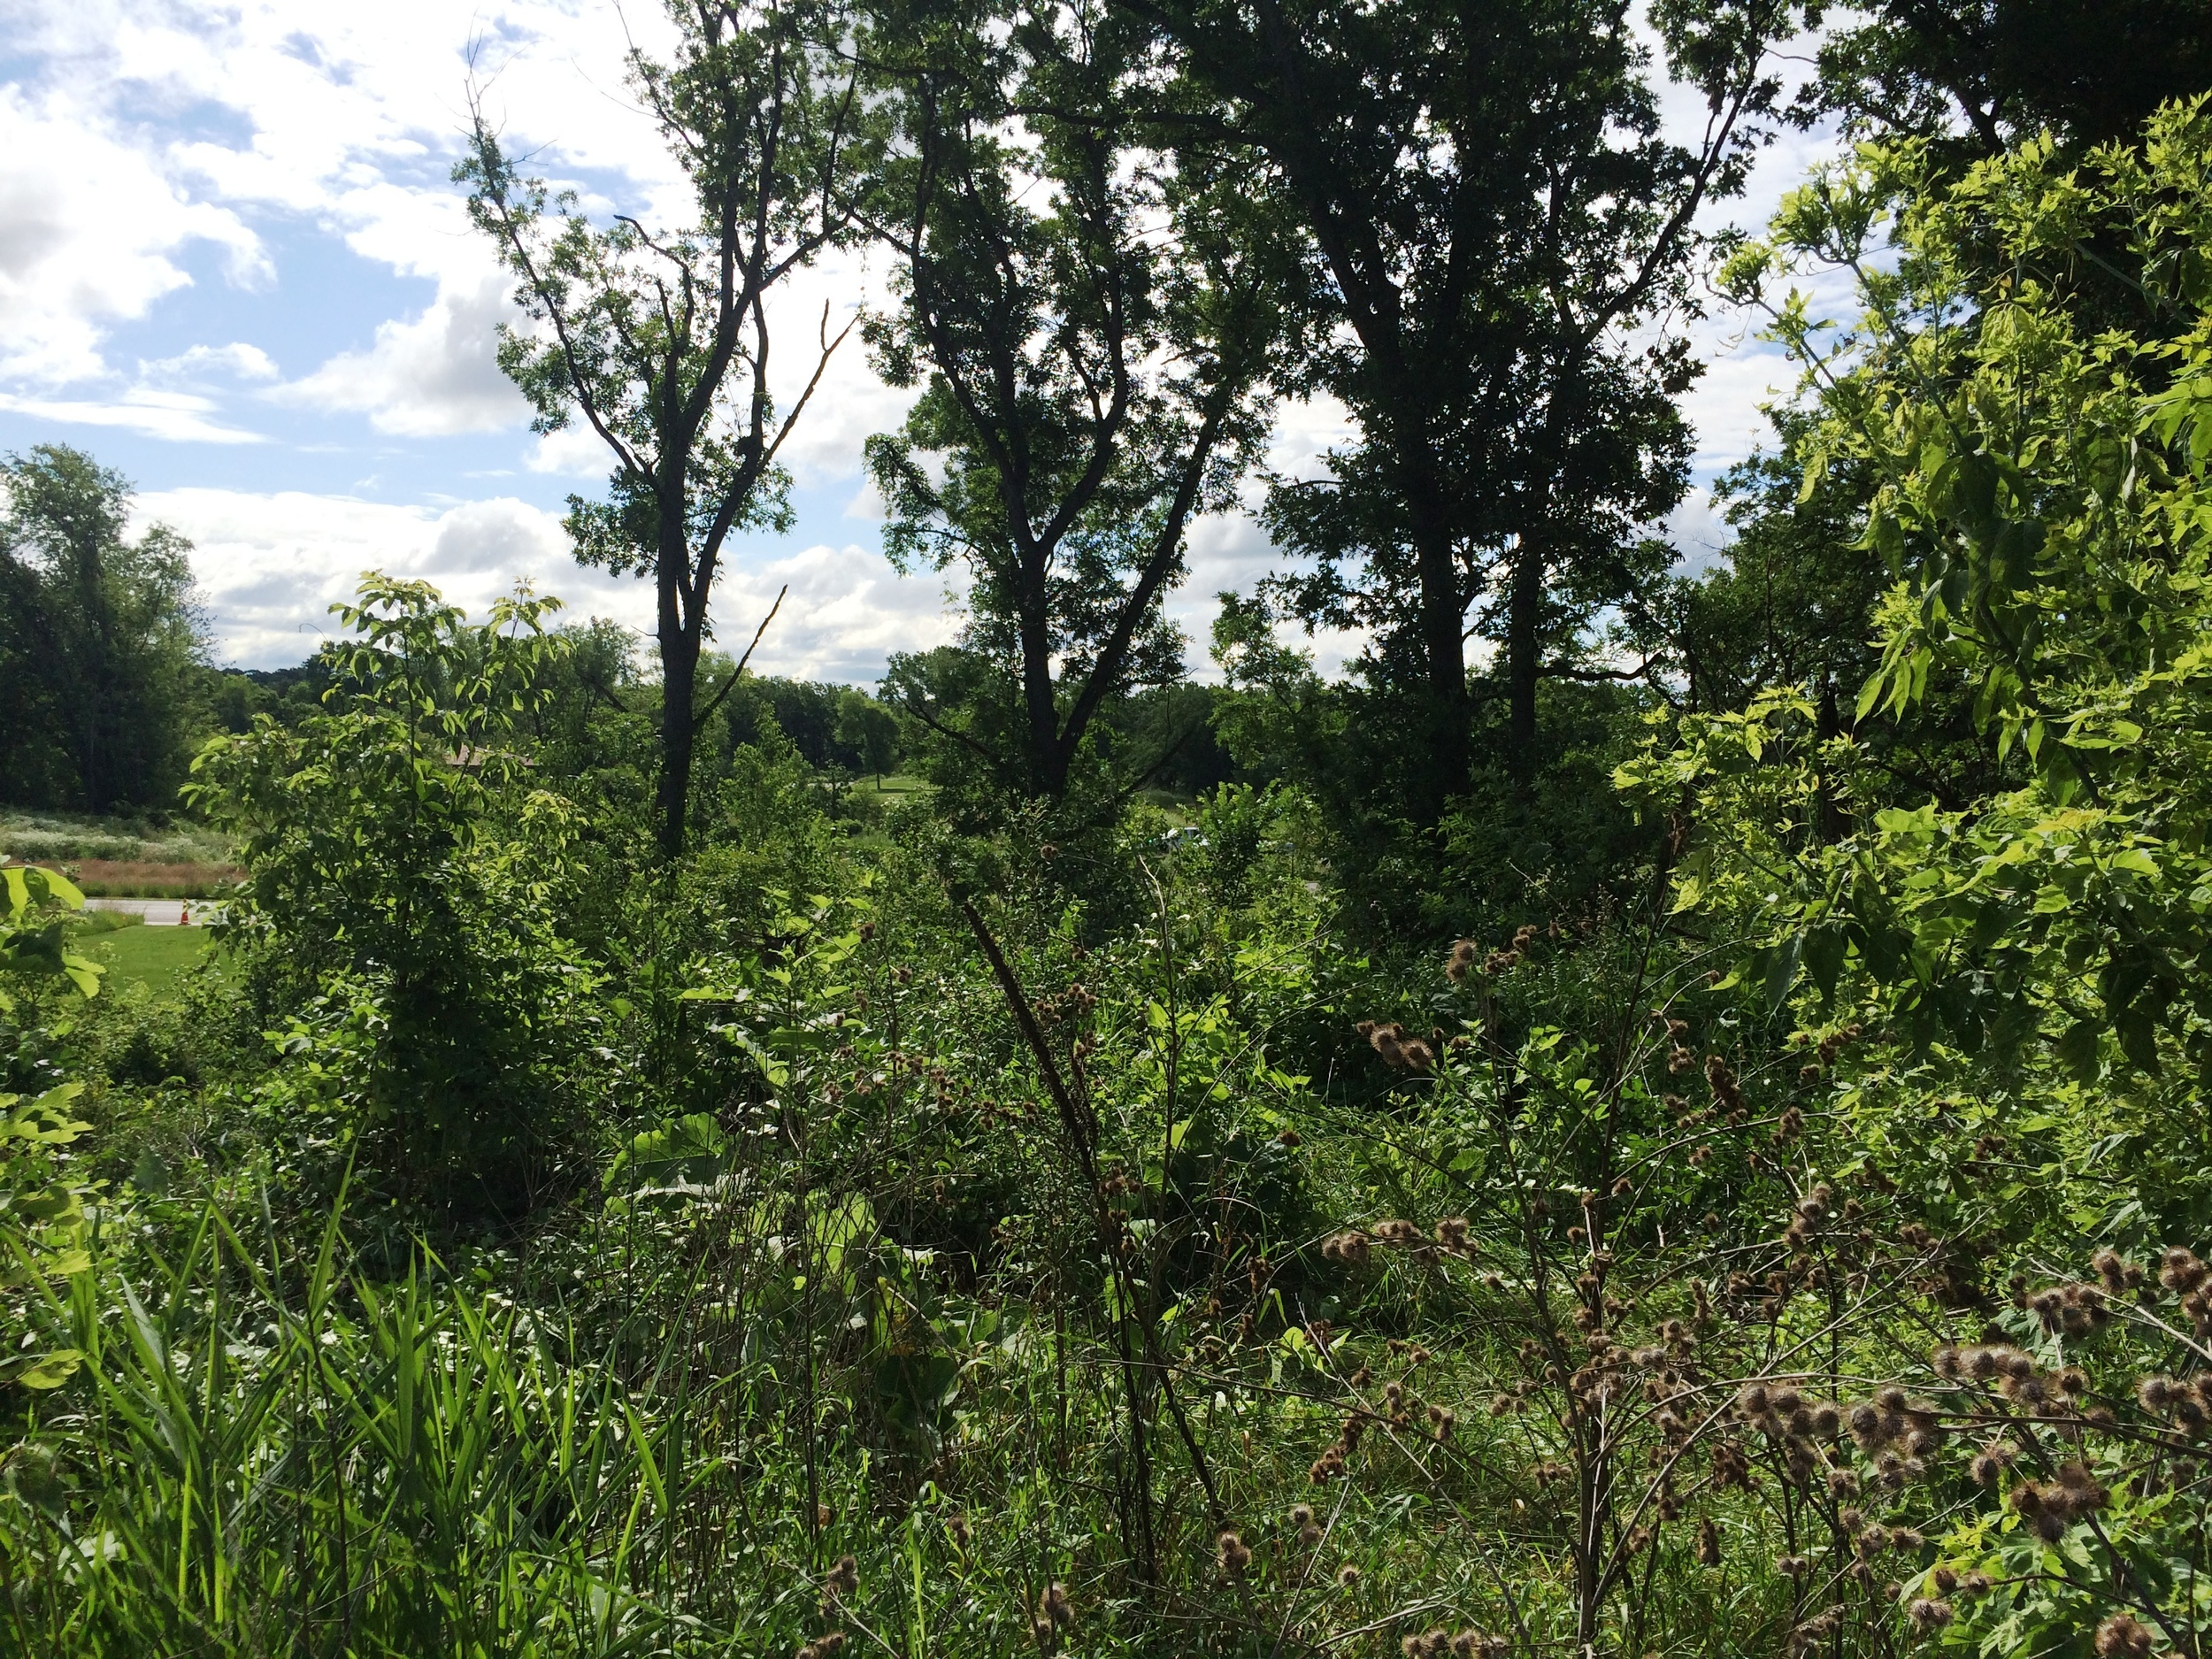 After buckthorn removal